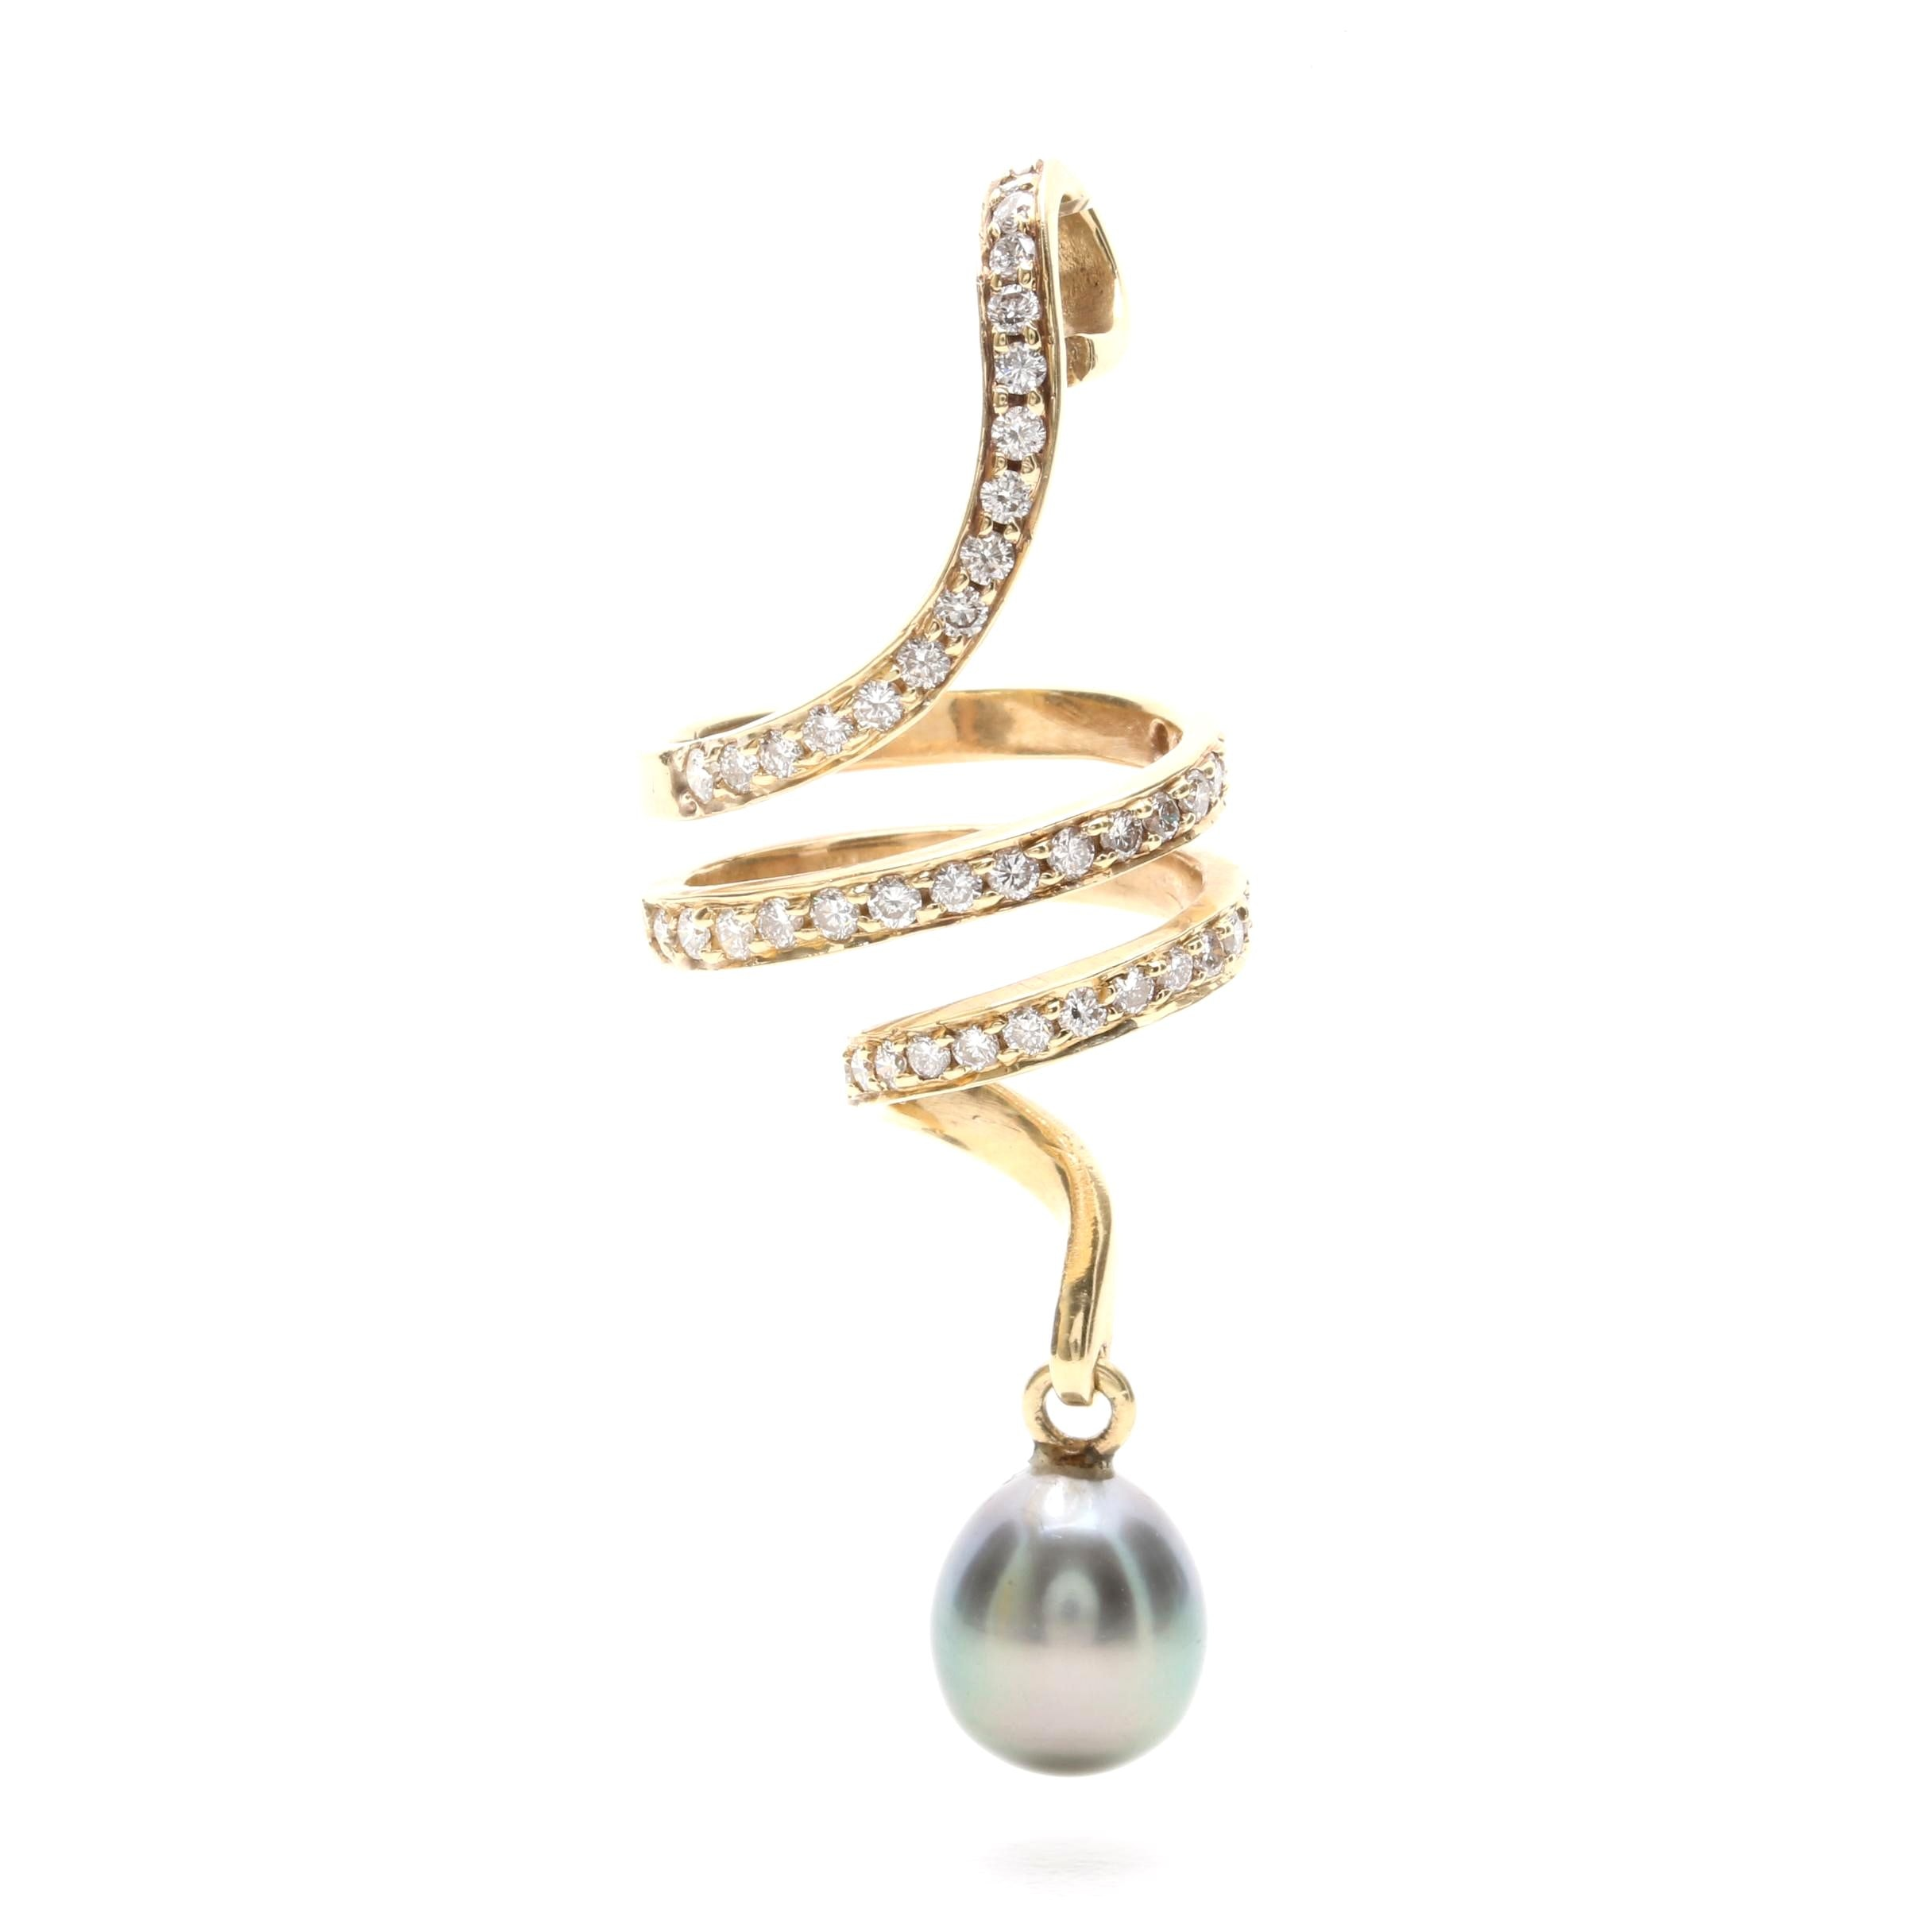 14K Yellow Gold Diamond and Grey Cultured Pearl Pendant